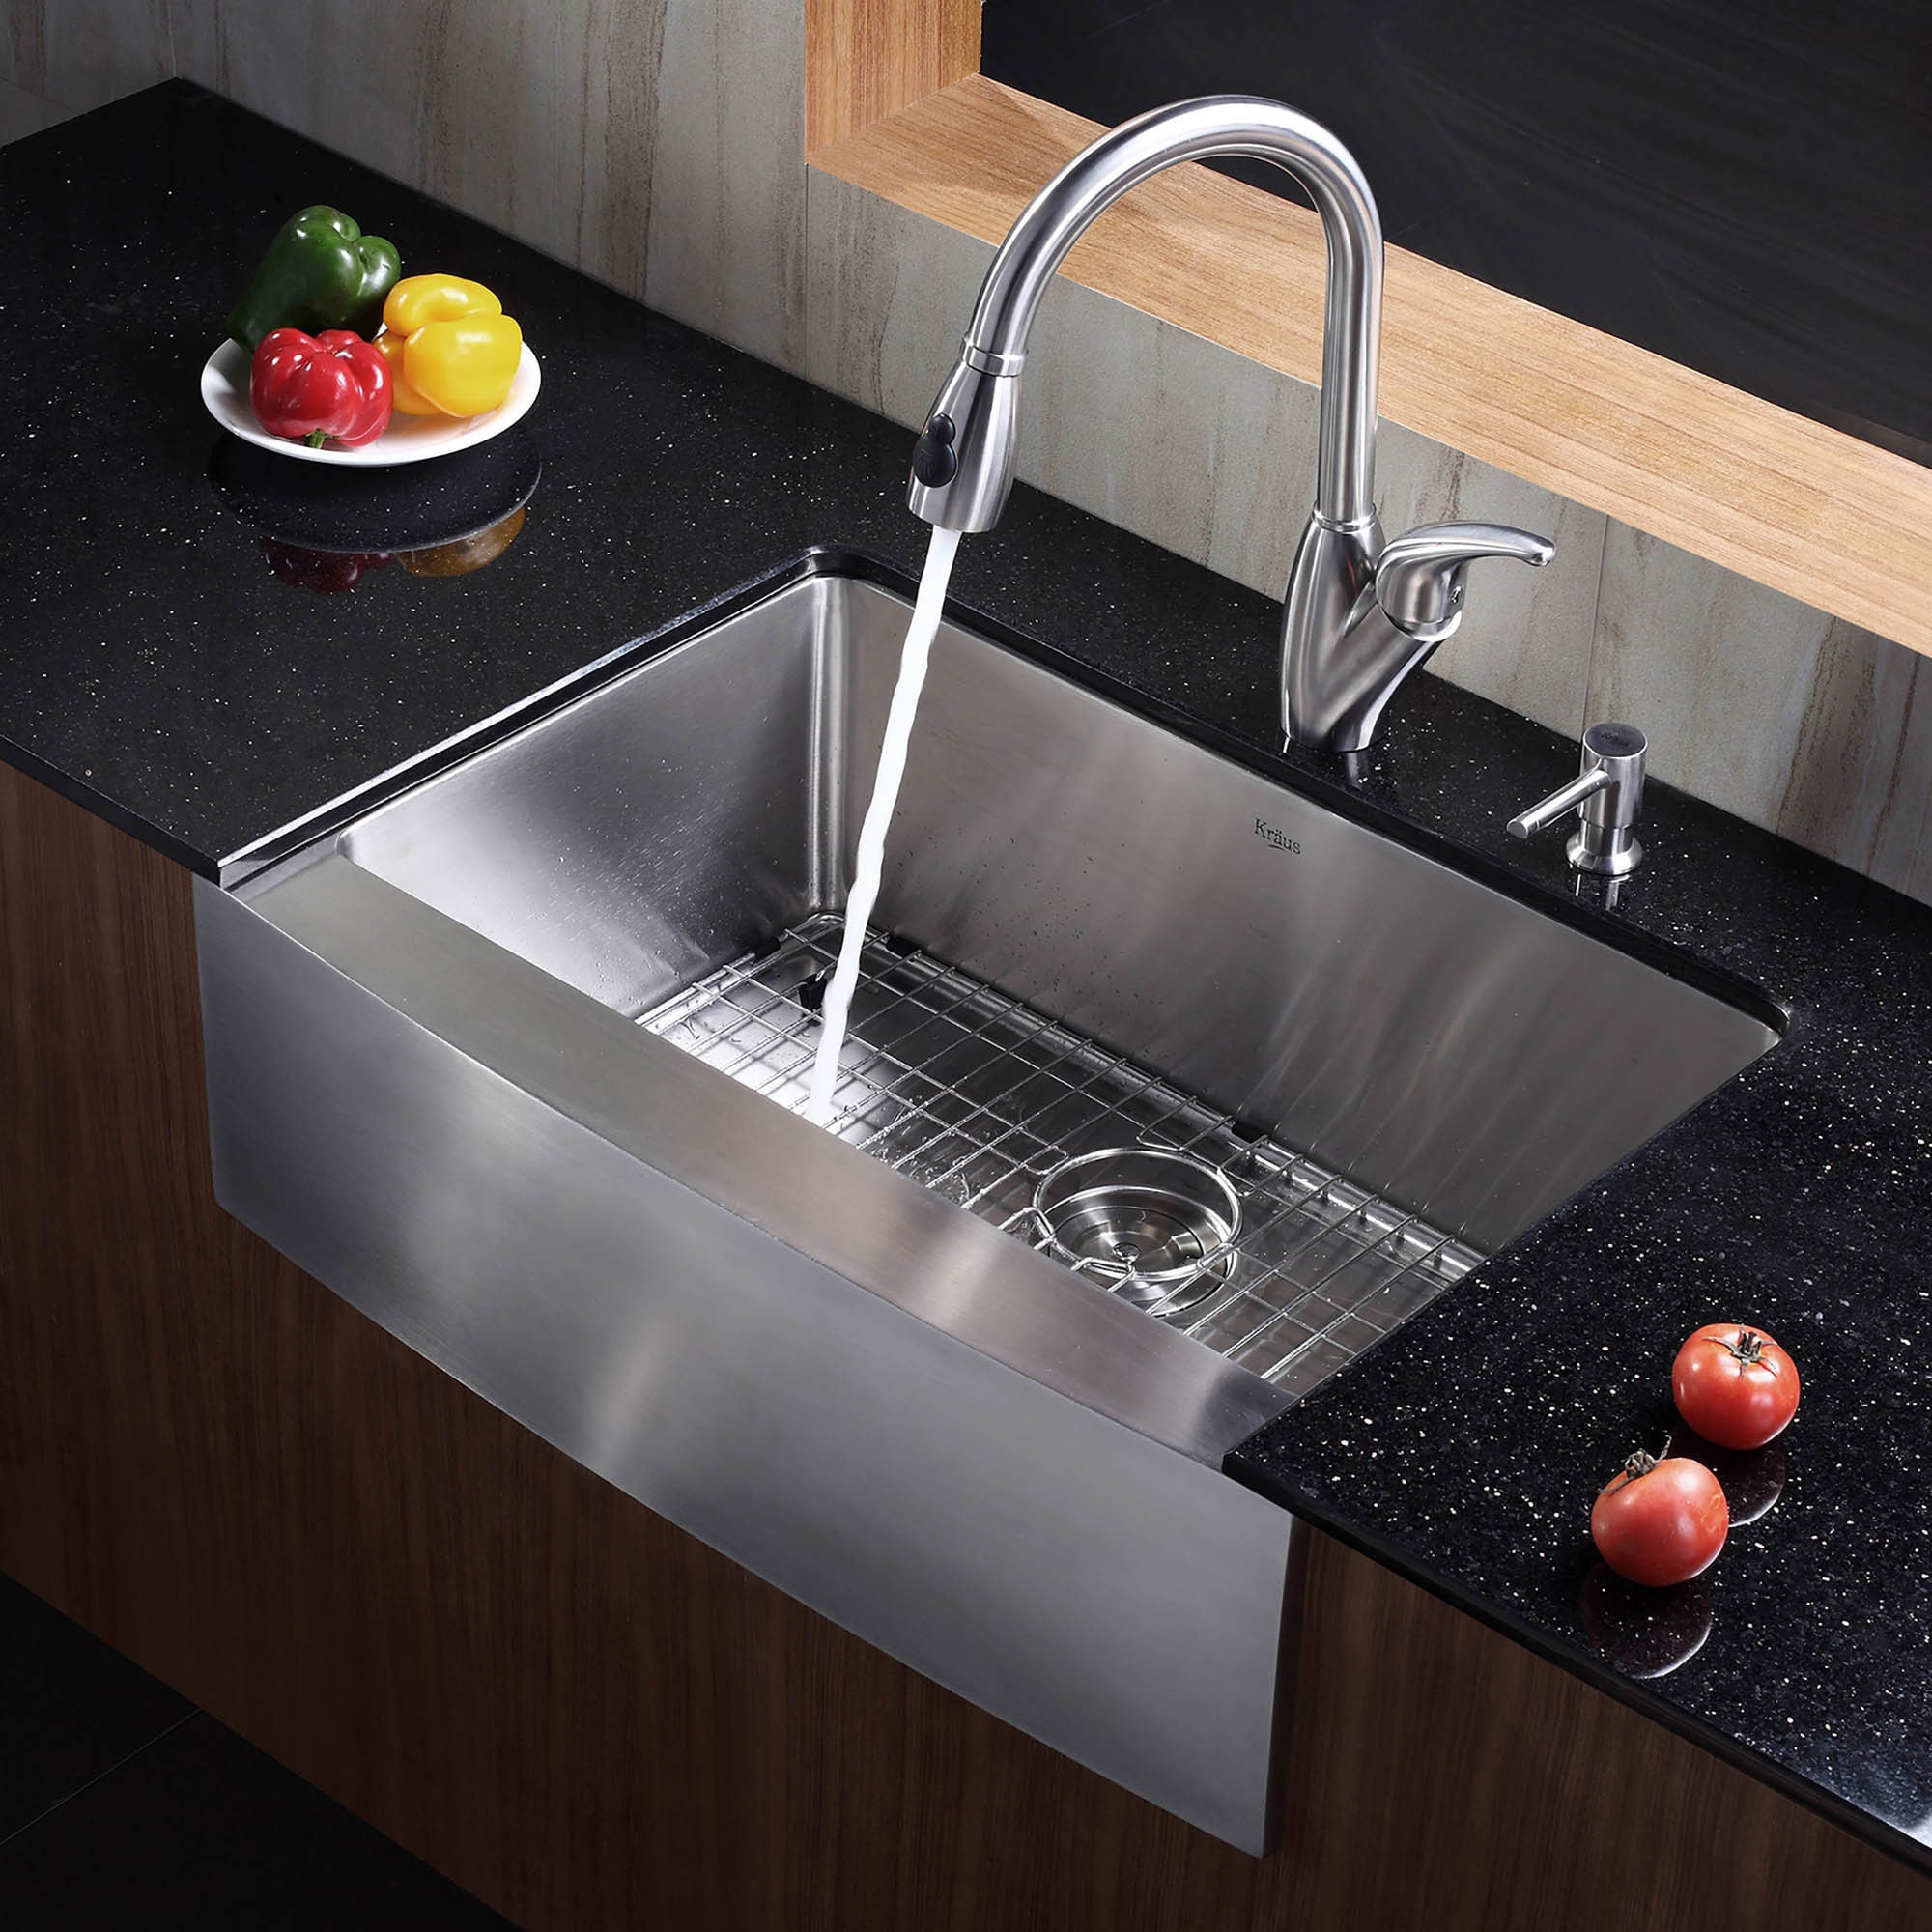 kraus khf200-30 farmhouse 30 inch 1-bowl stainless steel kitchen sink